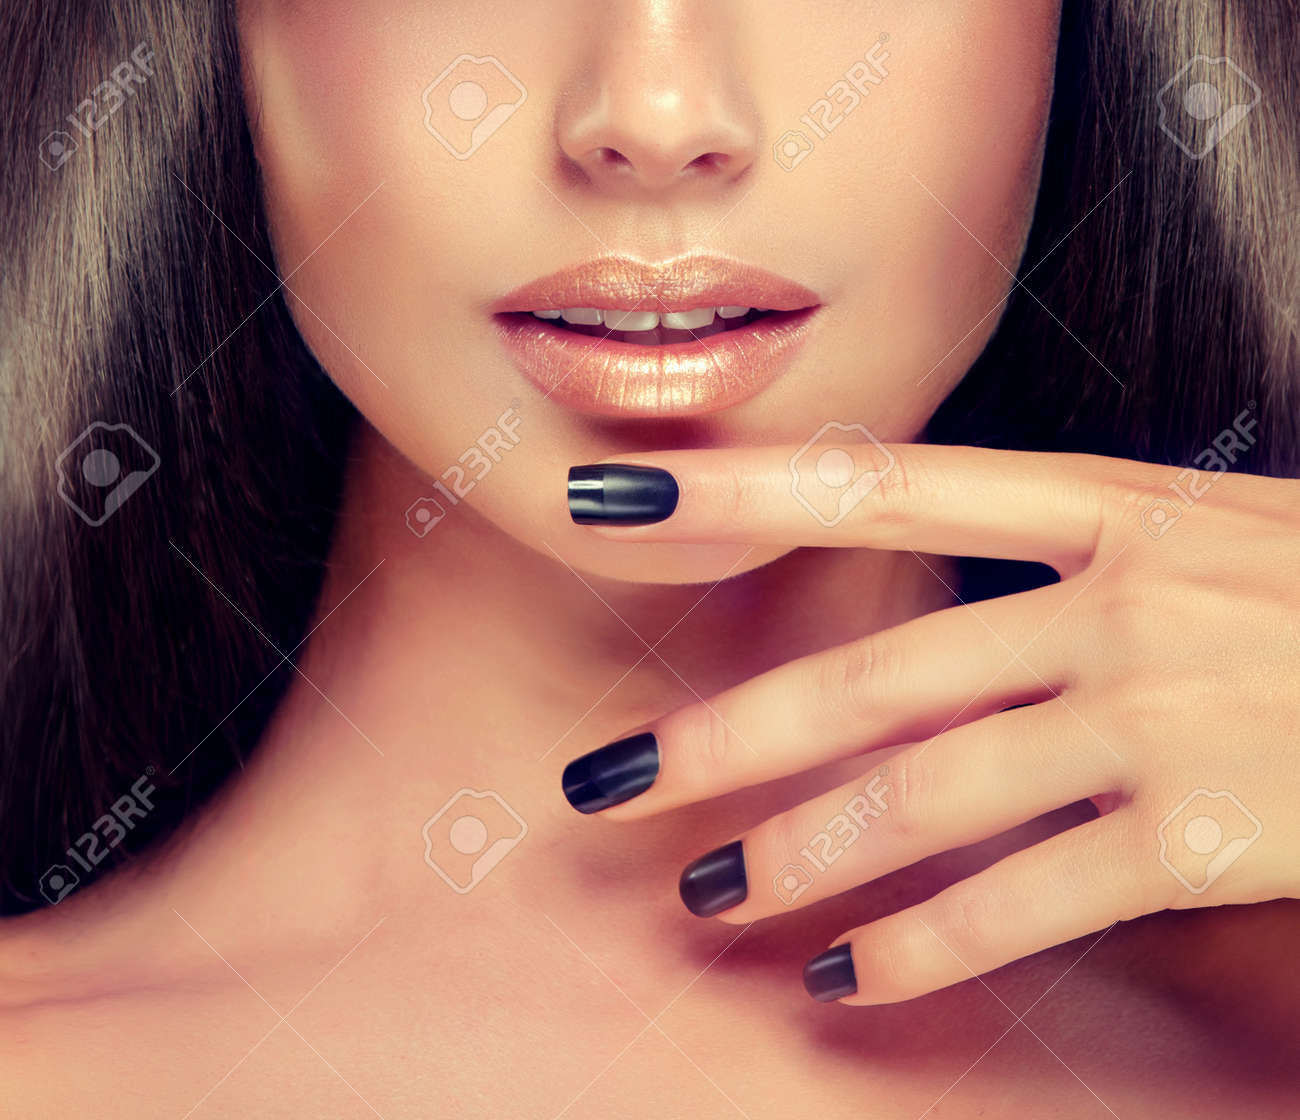 Beautiful woman-model is showing black french style manicure..